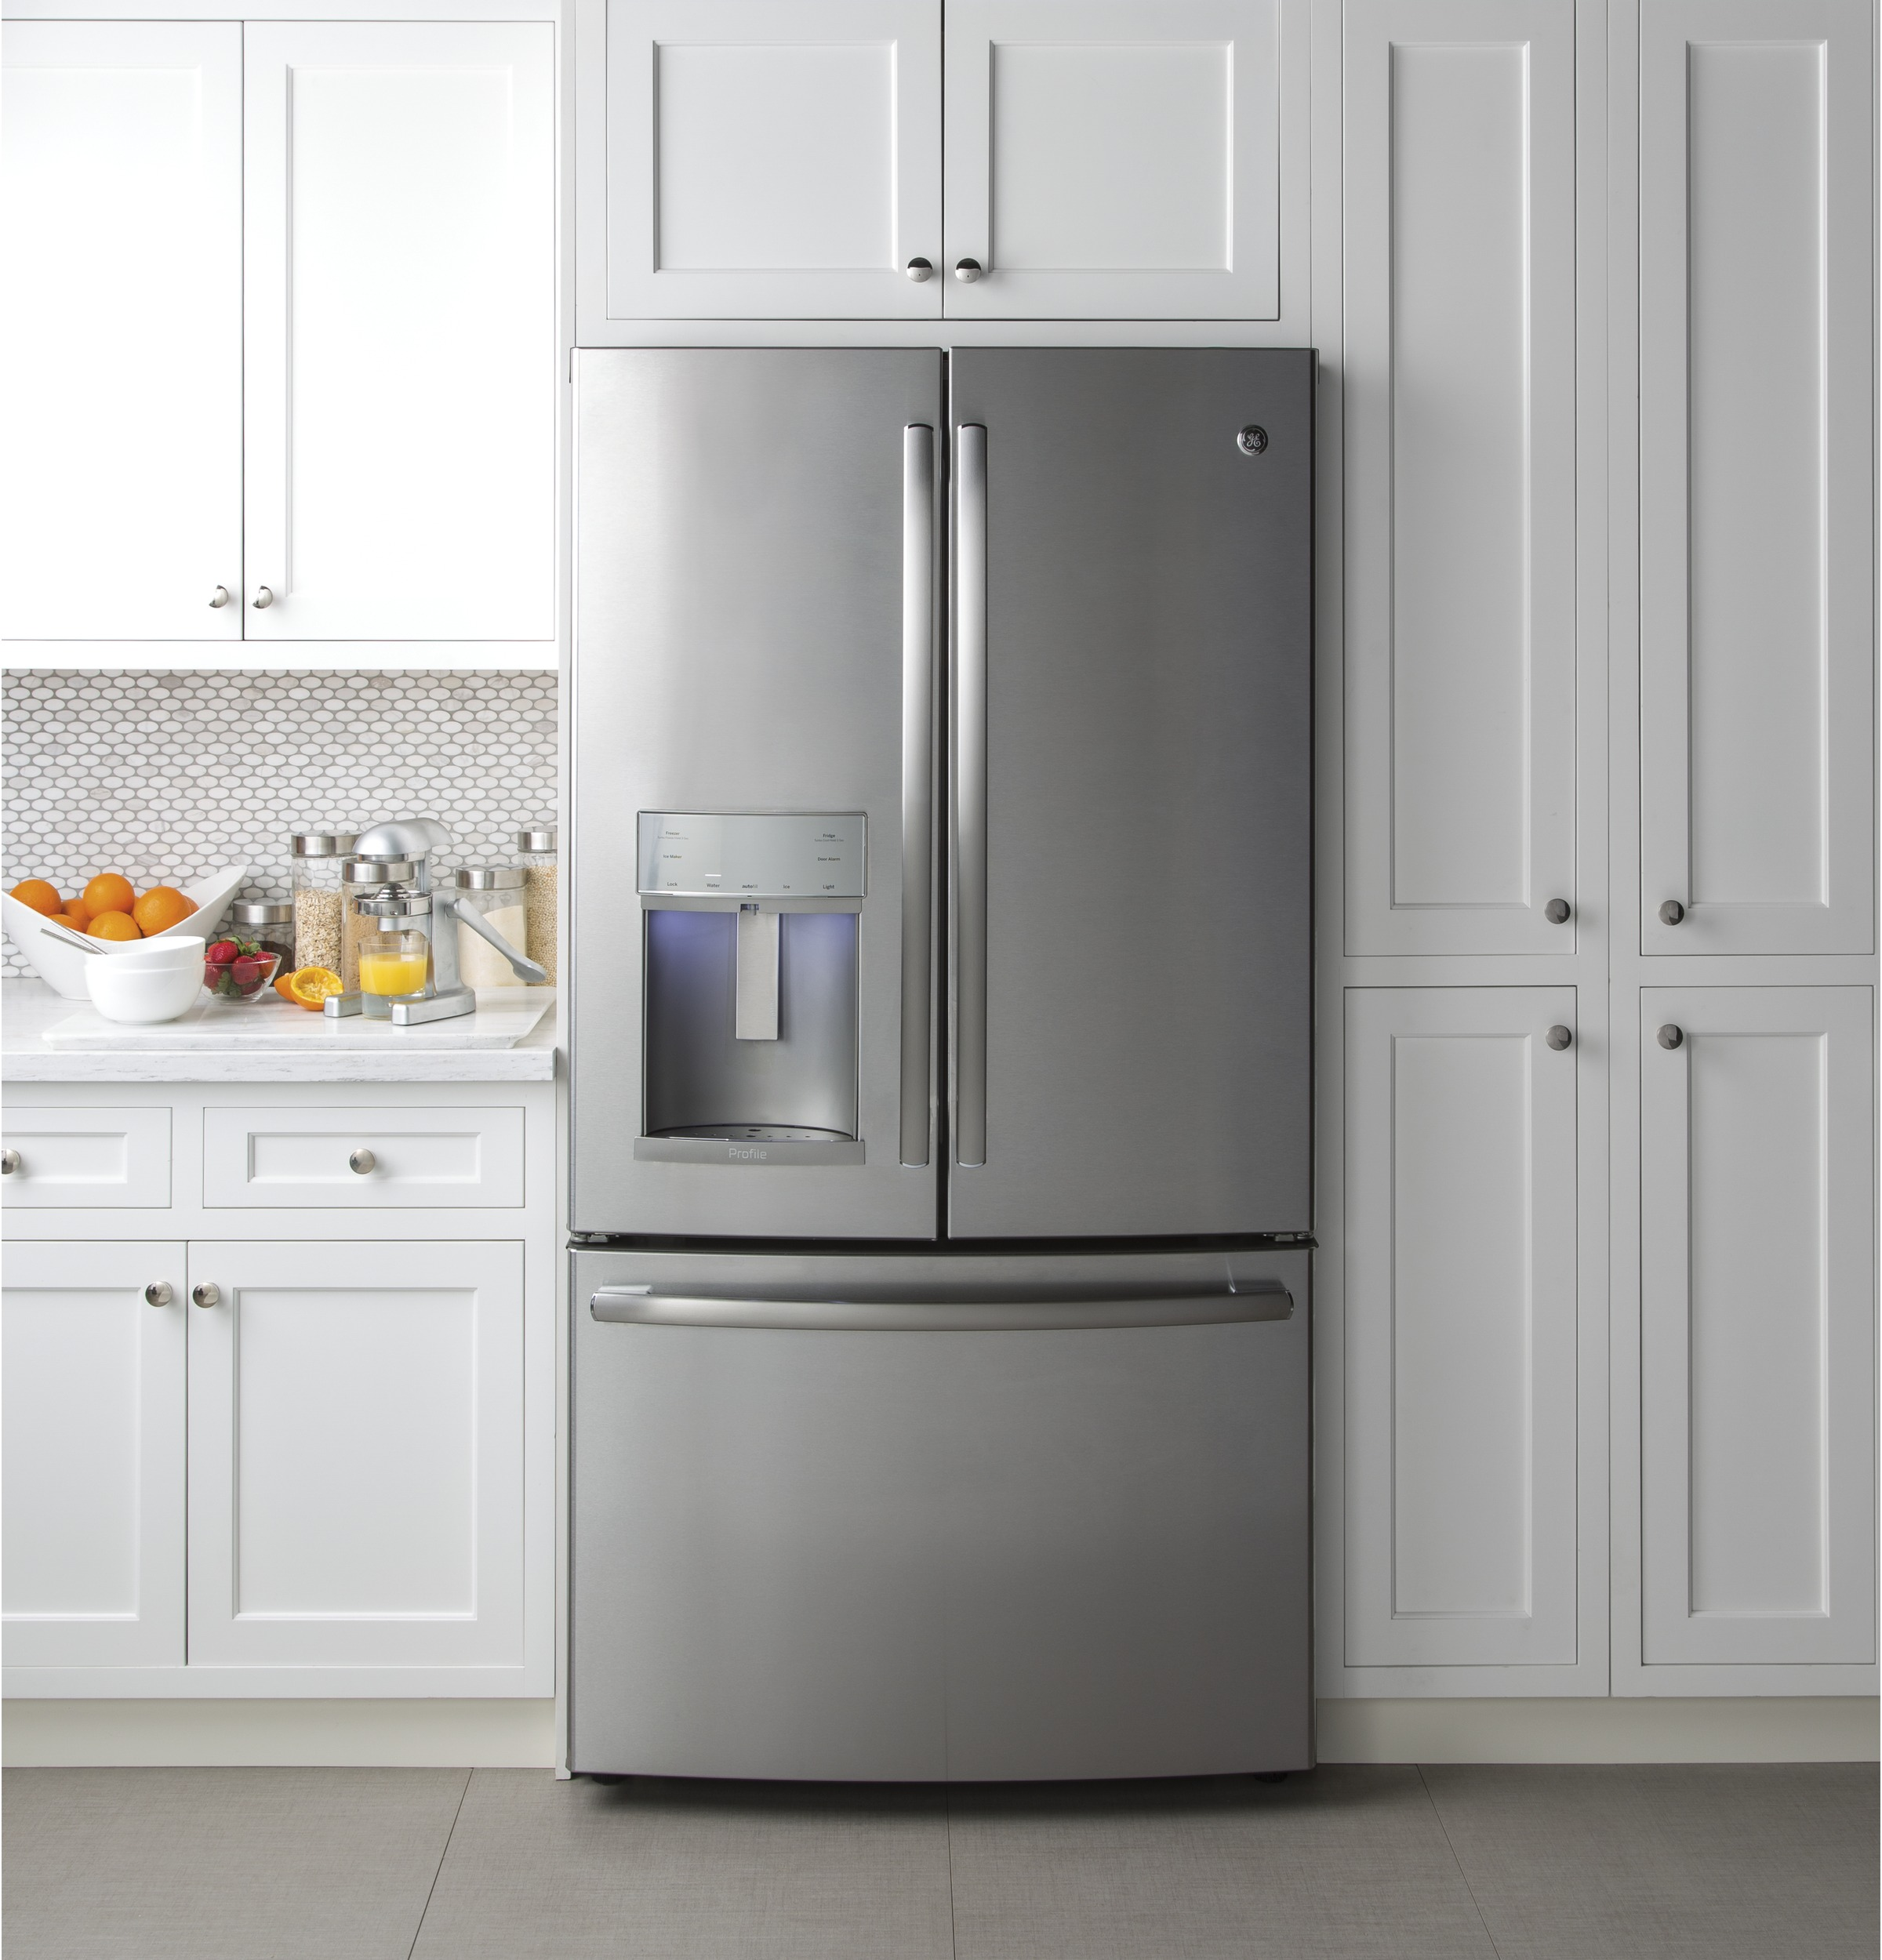 GE Profile™ Series PFE28KSKSS 27.8 cu. ft. French Door Refrigerator - Stainless Steel